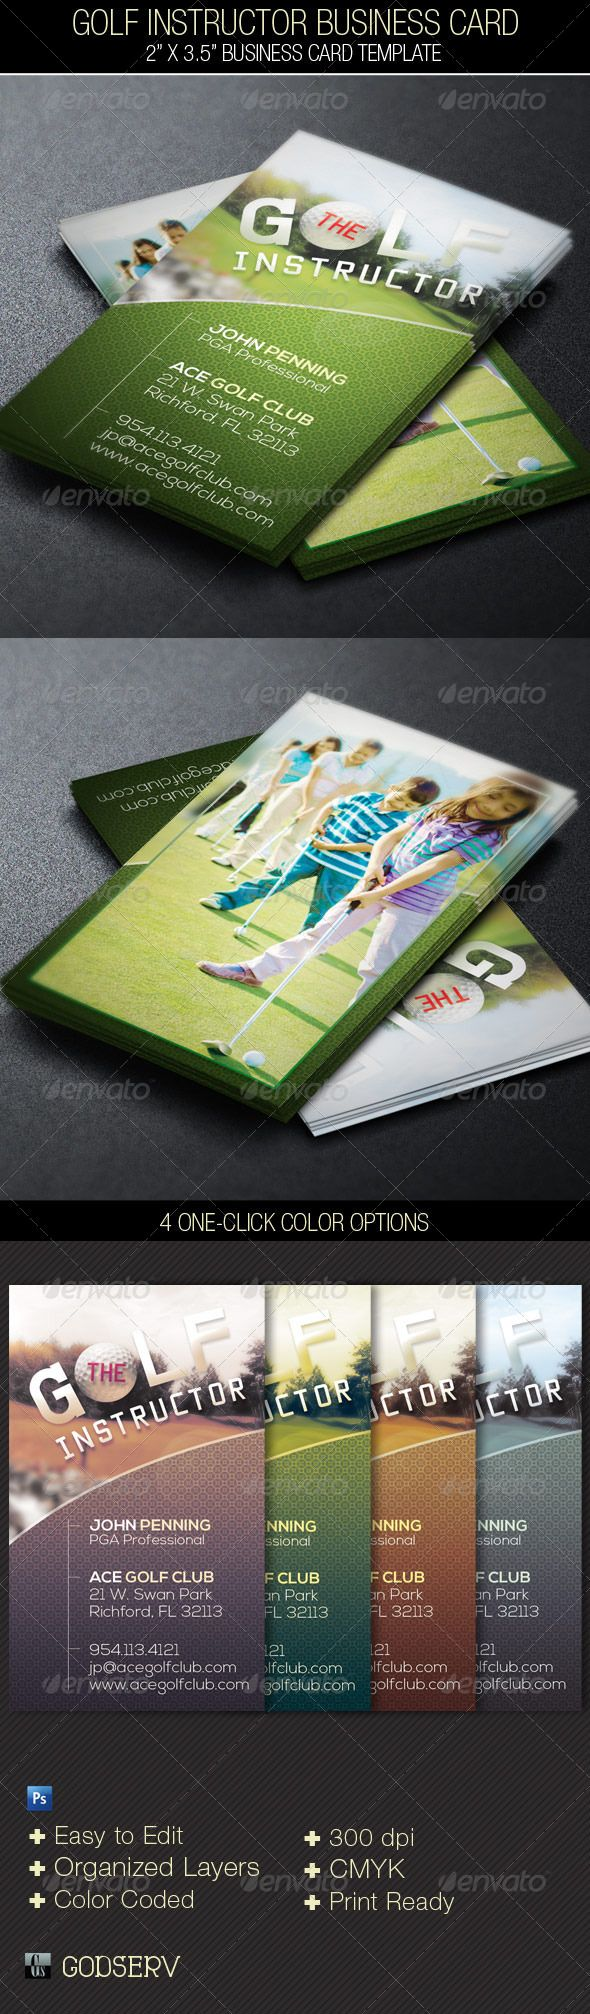 Golf Instructor Business Card Template Is For A Modern